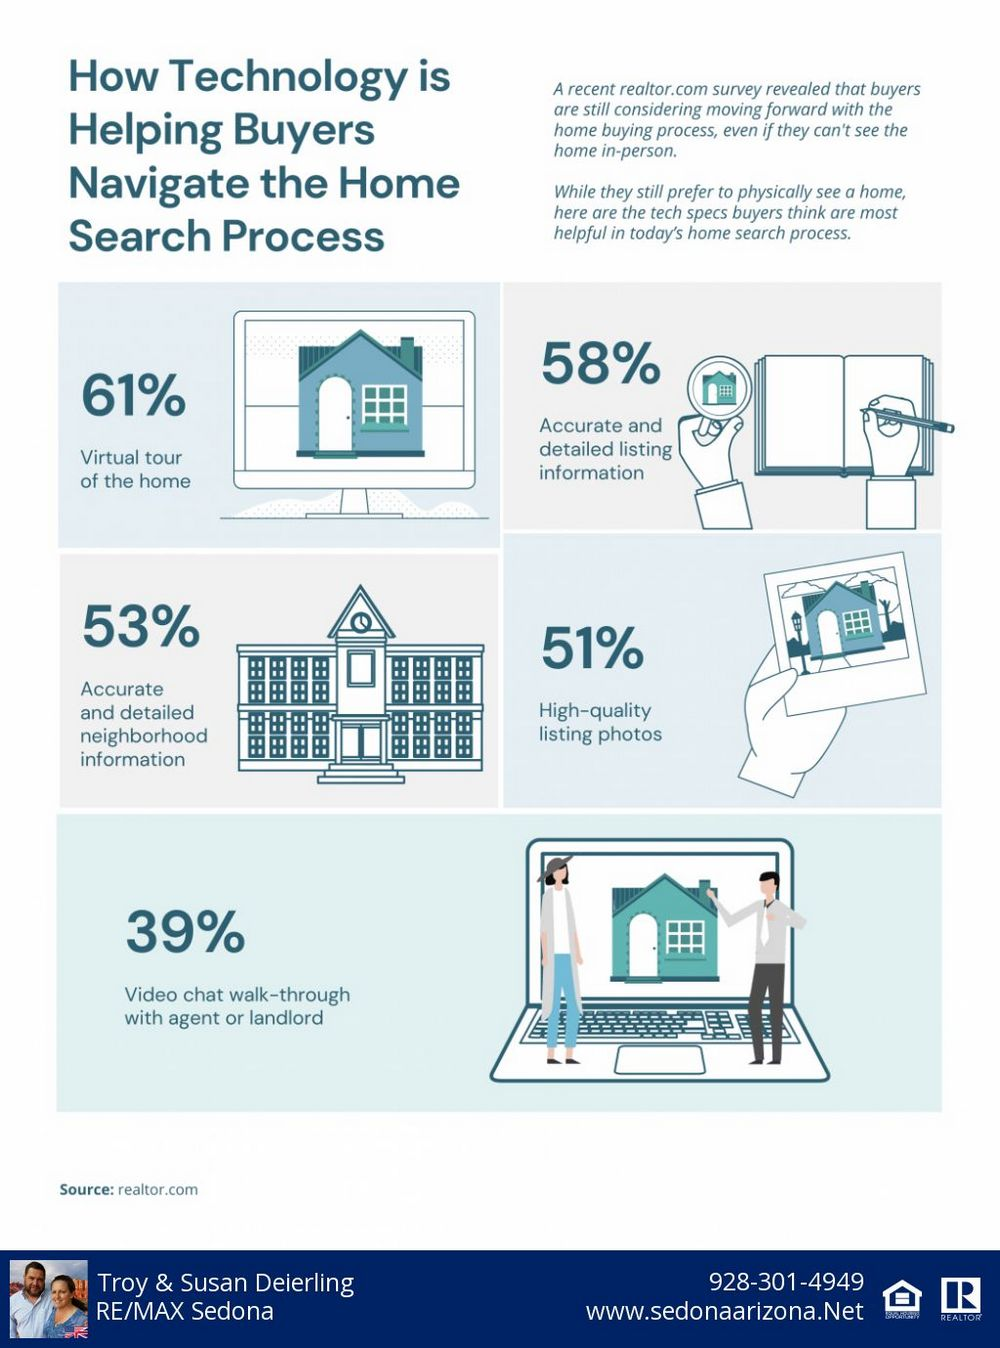 Sedona Home Buyers Use Technology to Find a Home